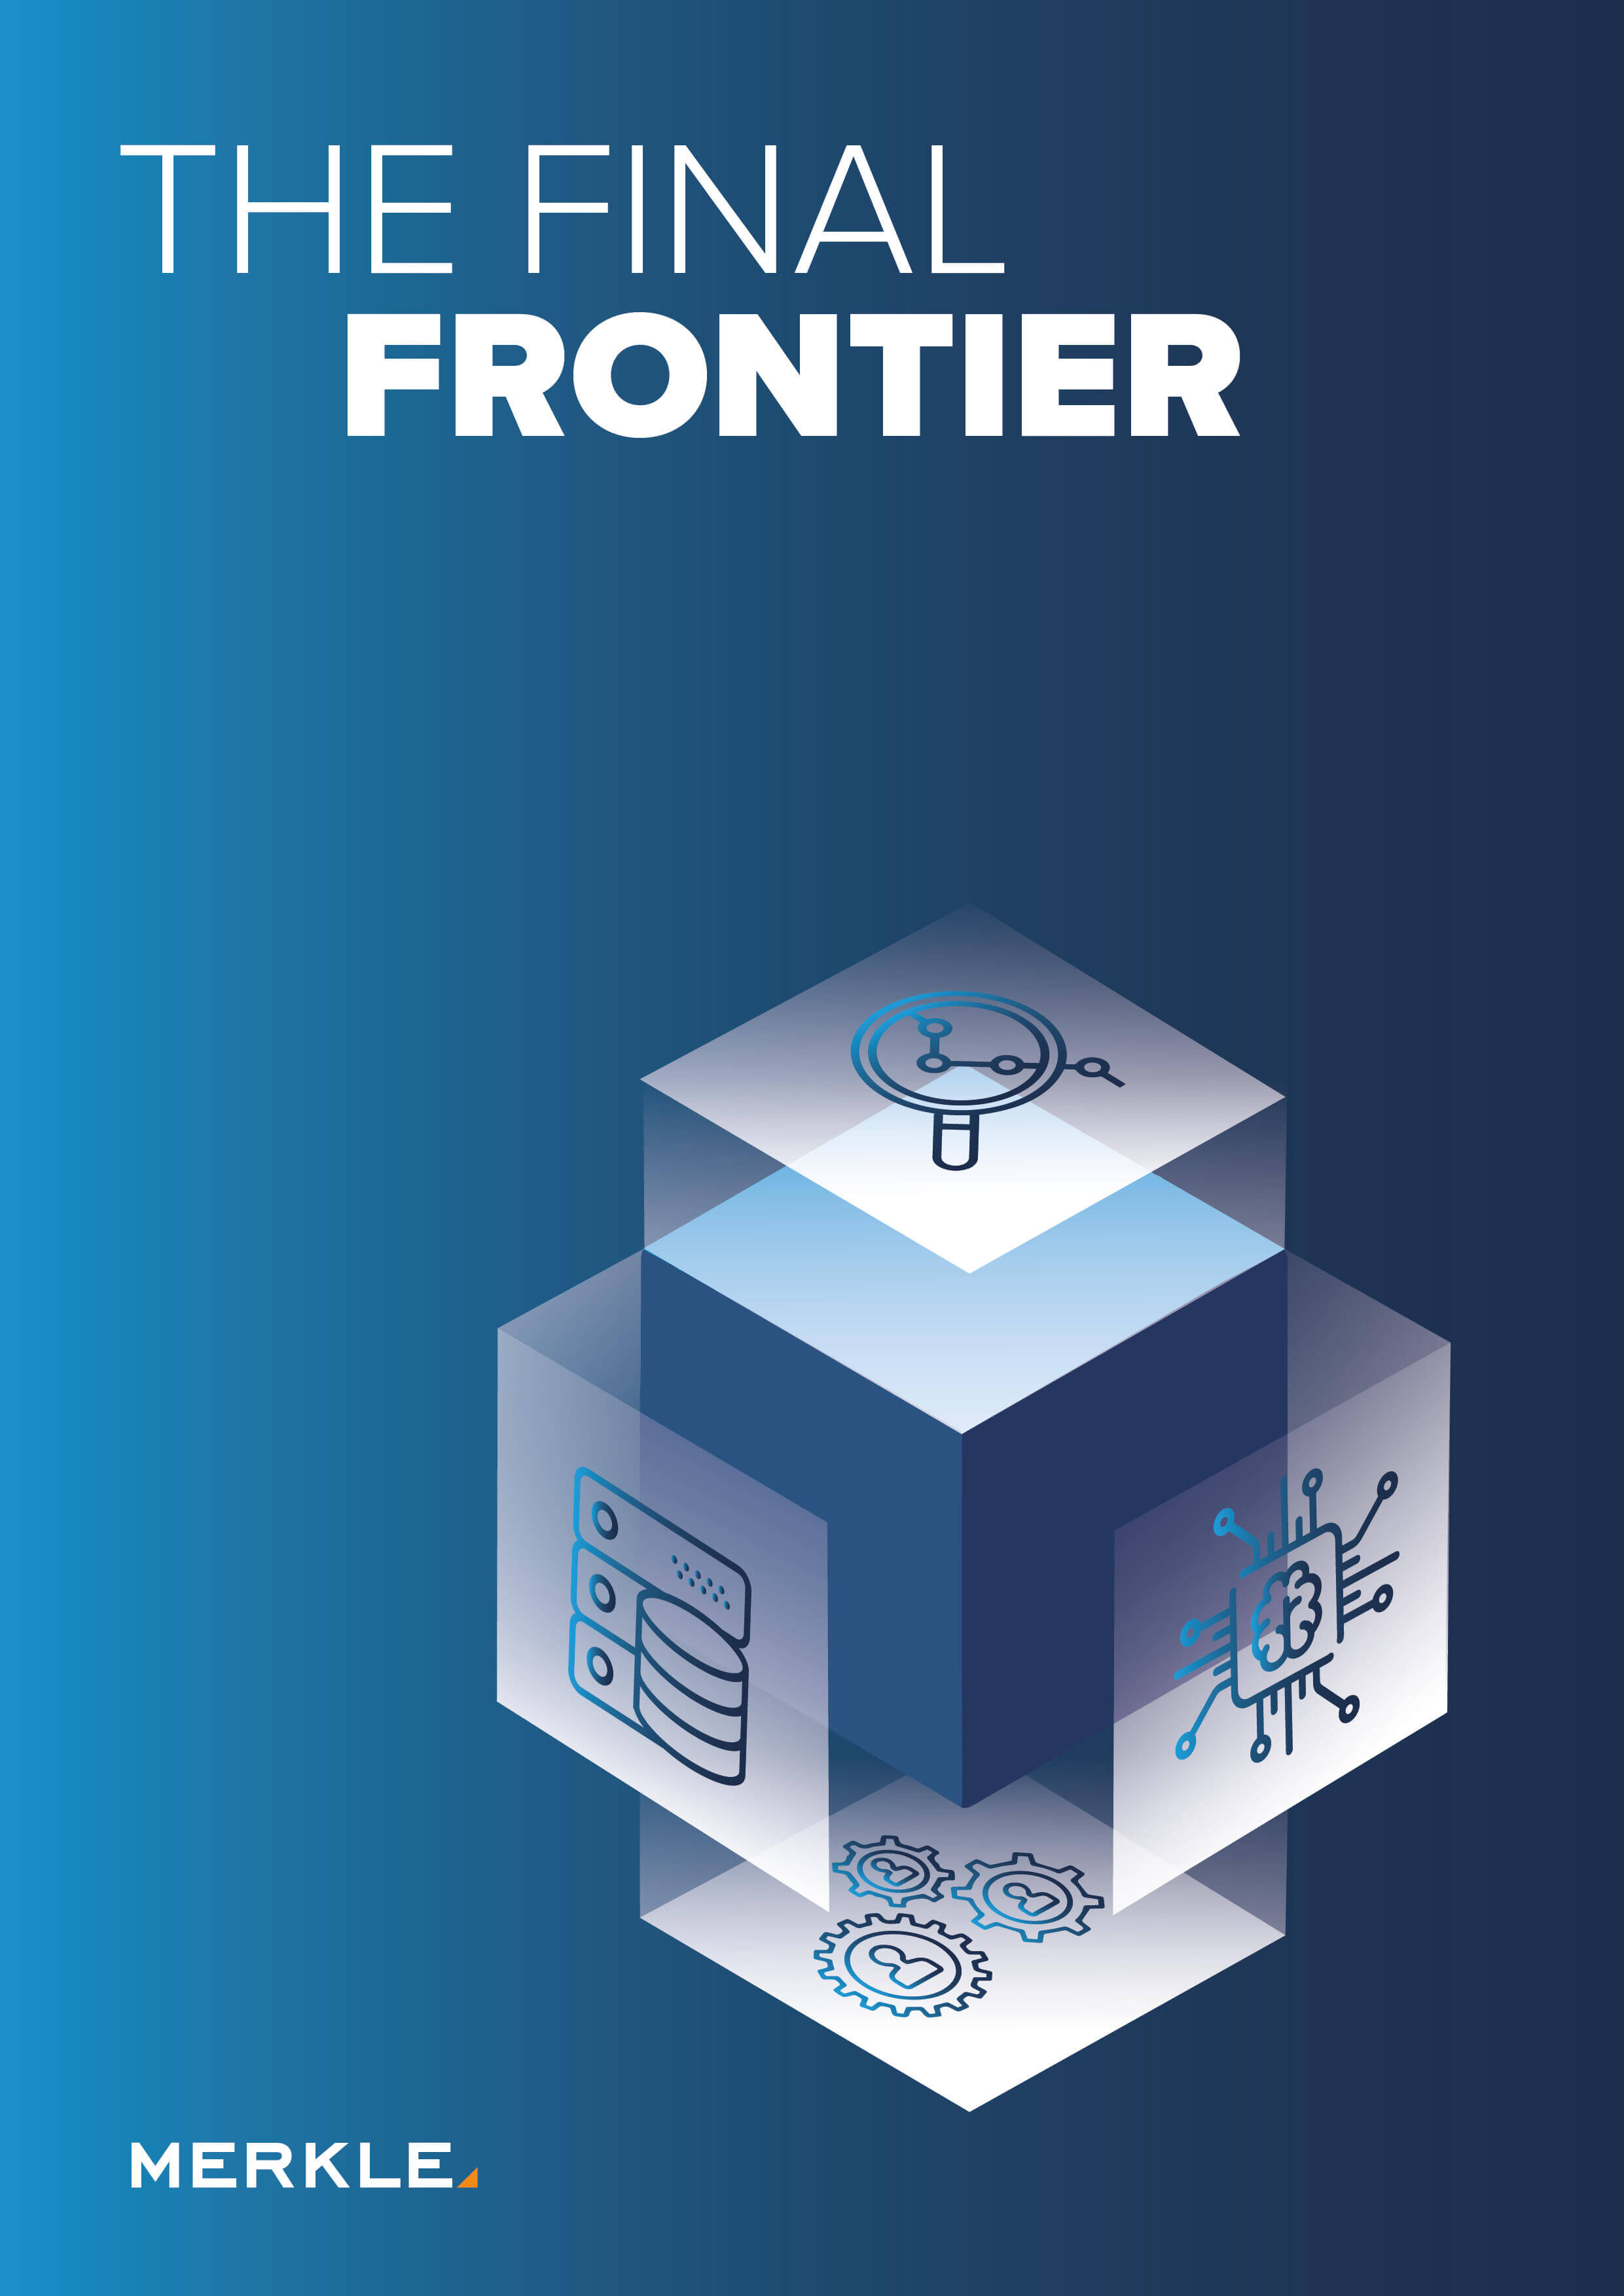 The Final Frontier: The quest to achieve total customer-centricity